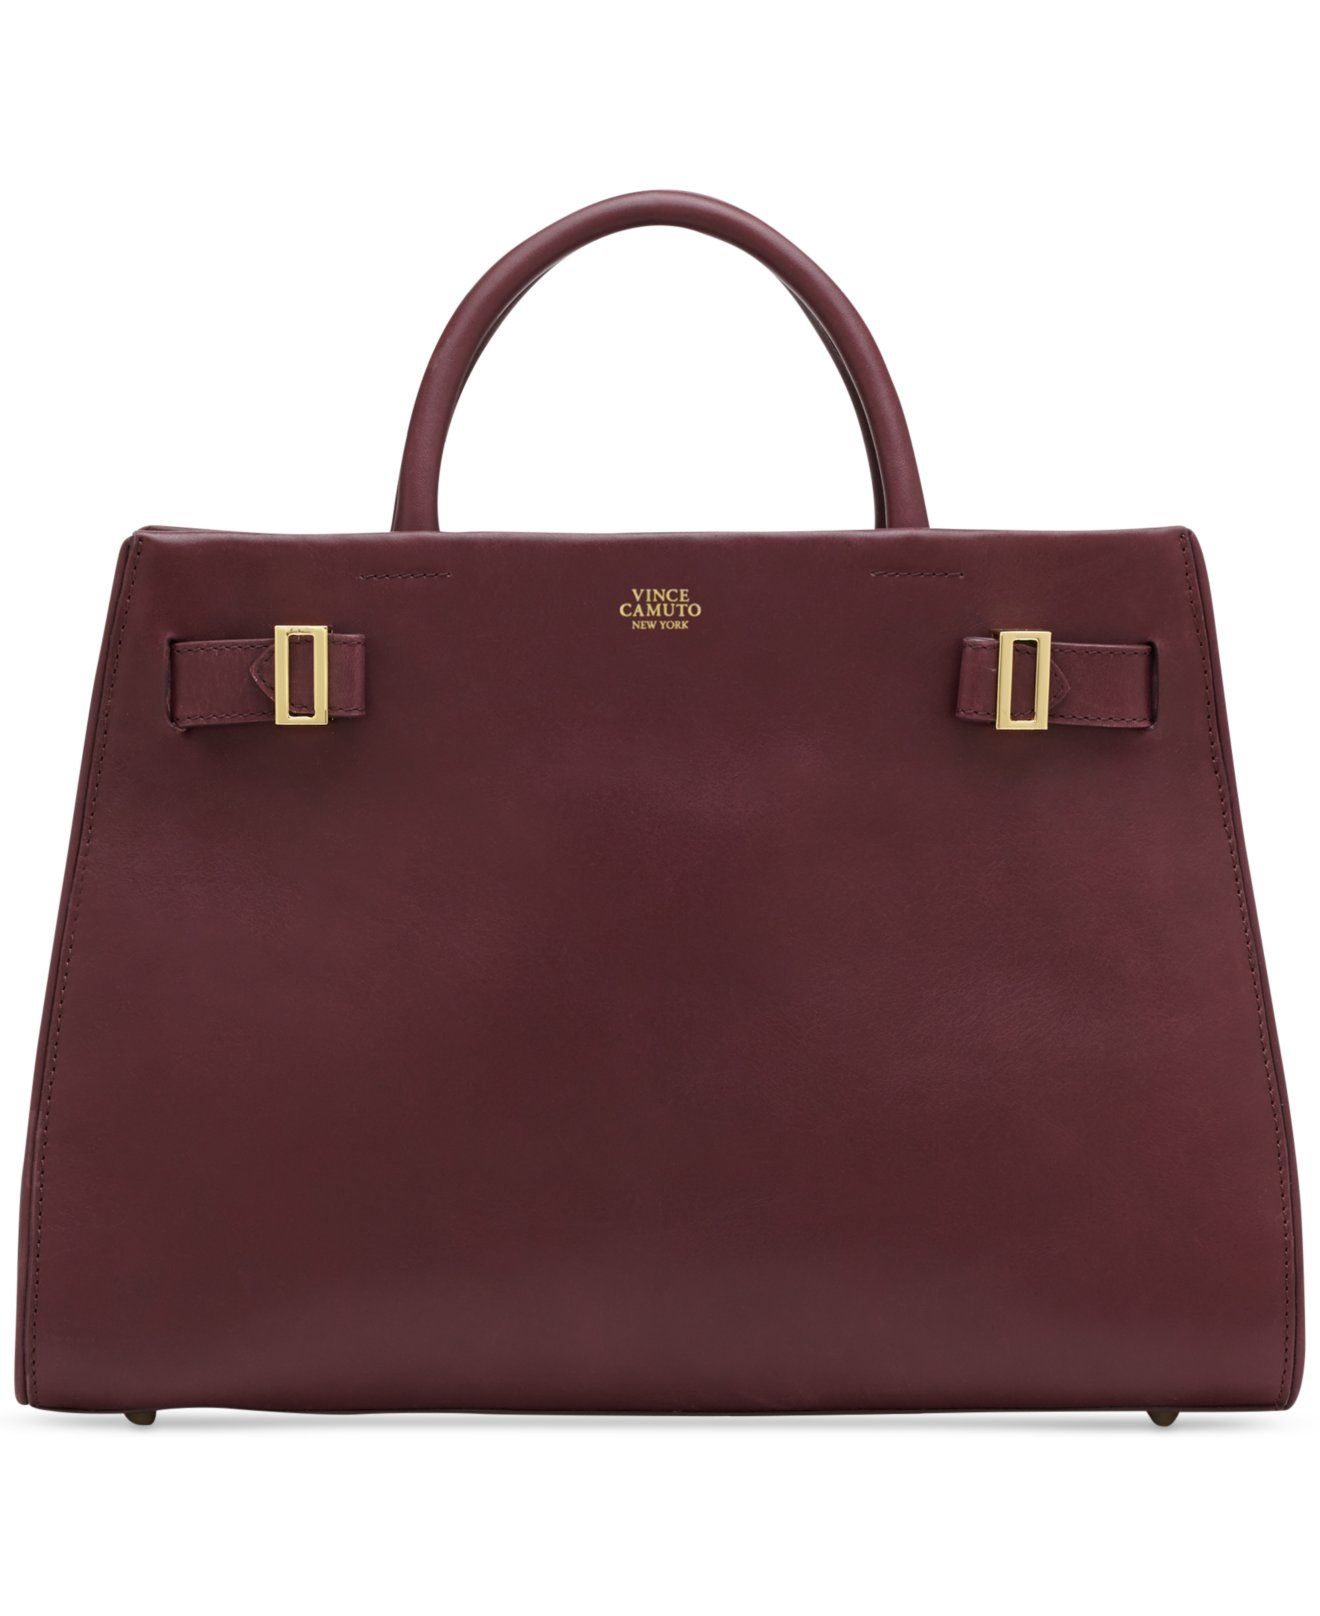 Vince Camuto Eli Satchel - Handbags & Accessories - Macy's